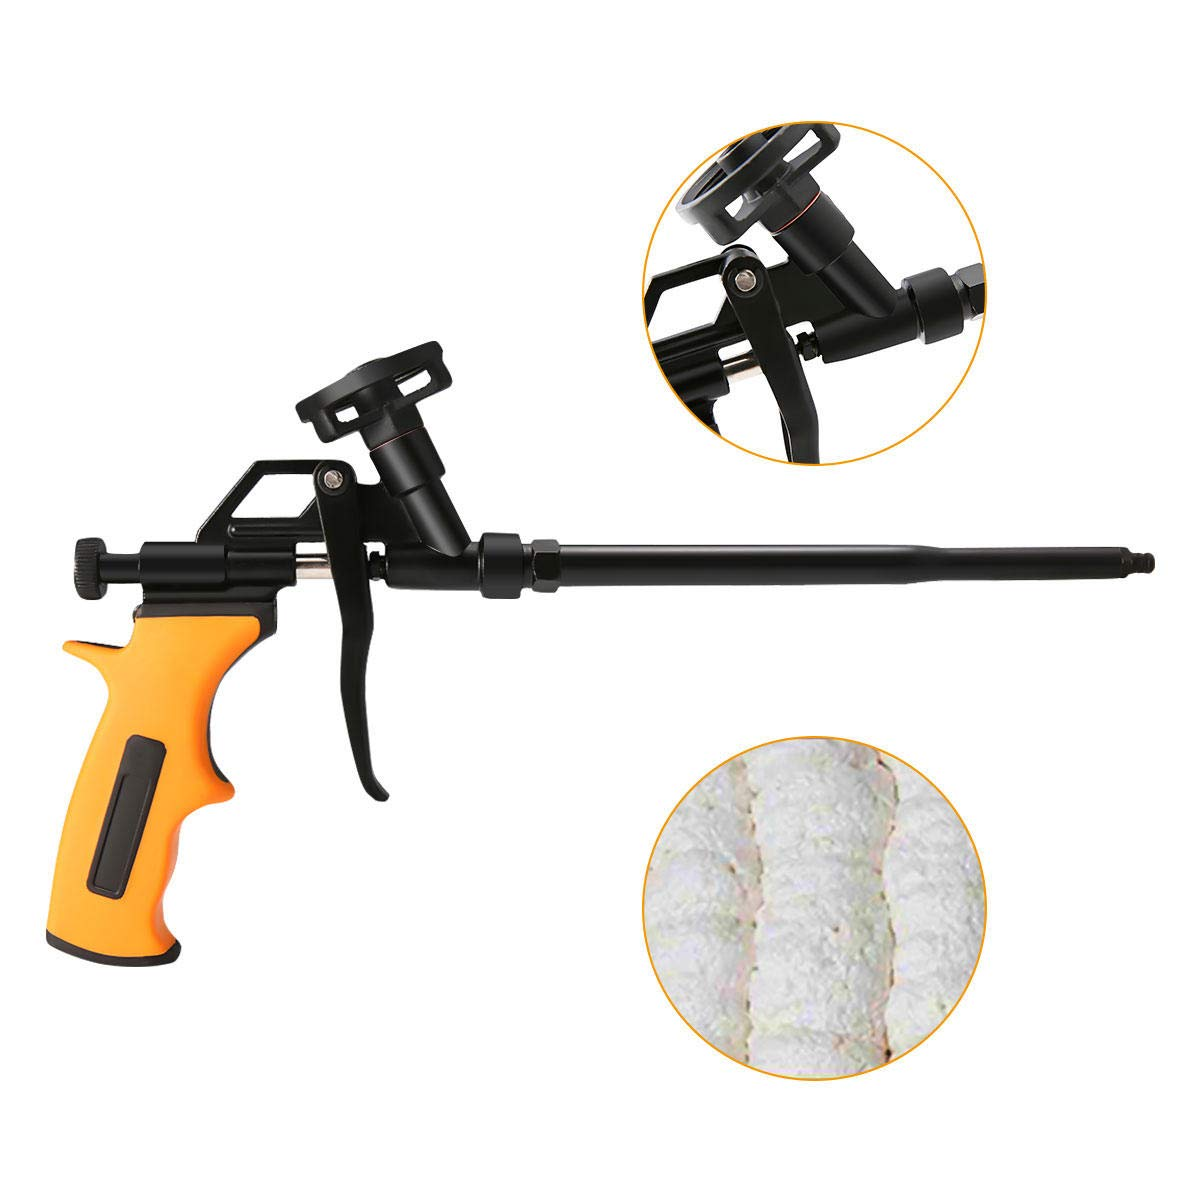 Professional Foam Gun Expanding Foaming Caulking Gun Grade Expanding Spray Application - Tools & Home Improvement Hand Tools -1 x Expanding Foam Spray